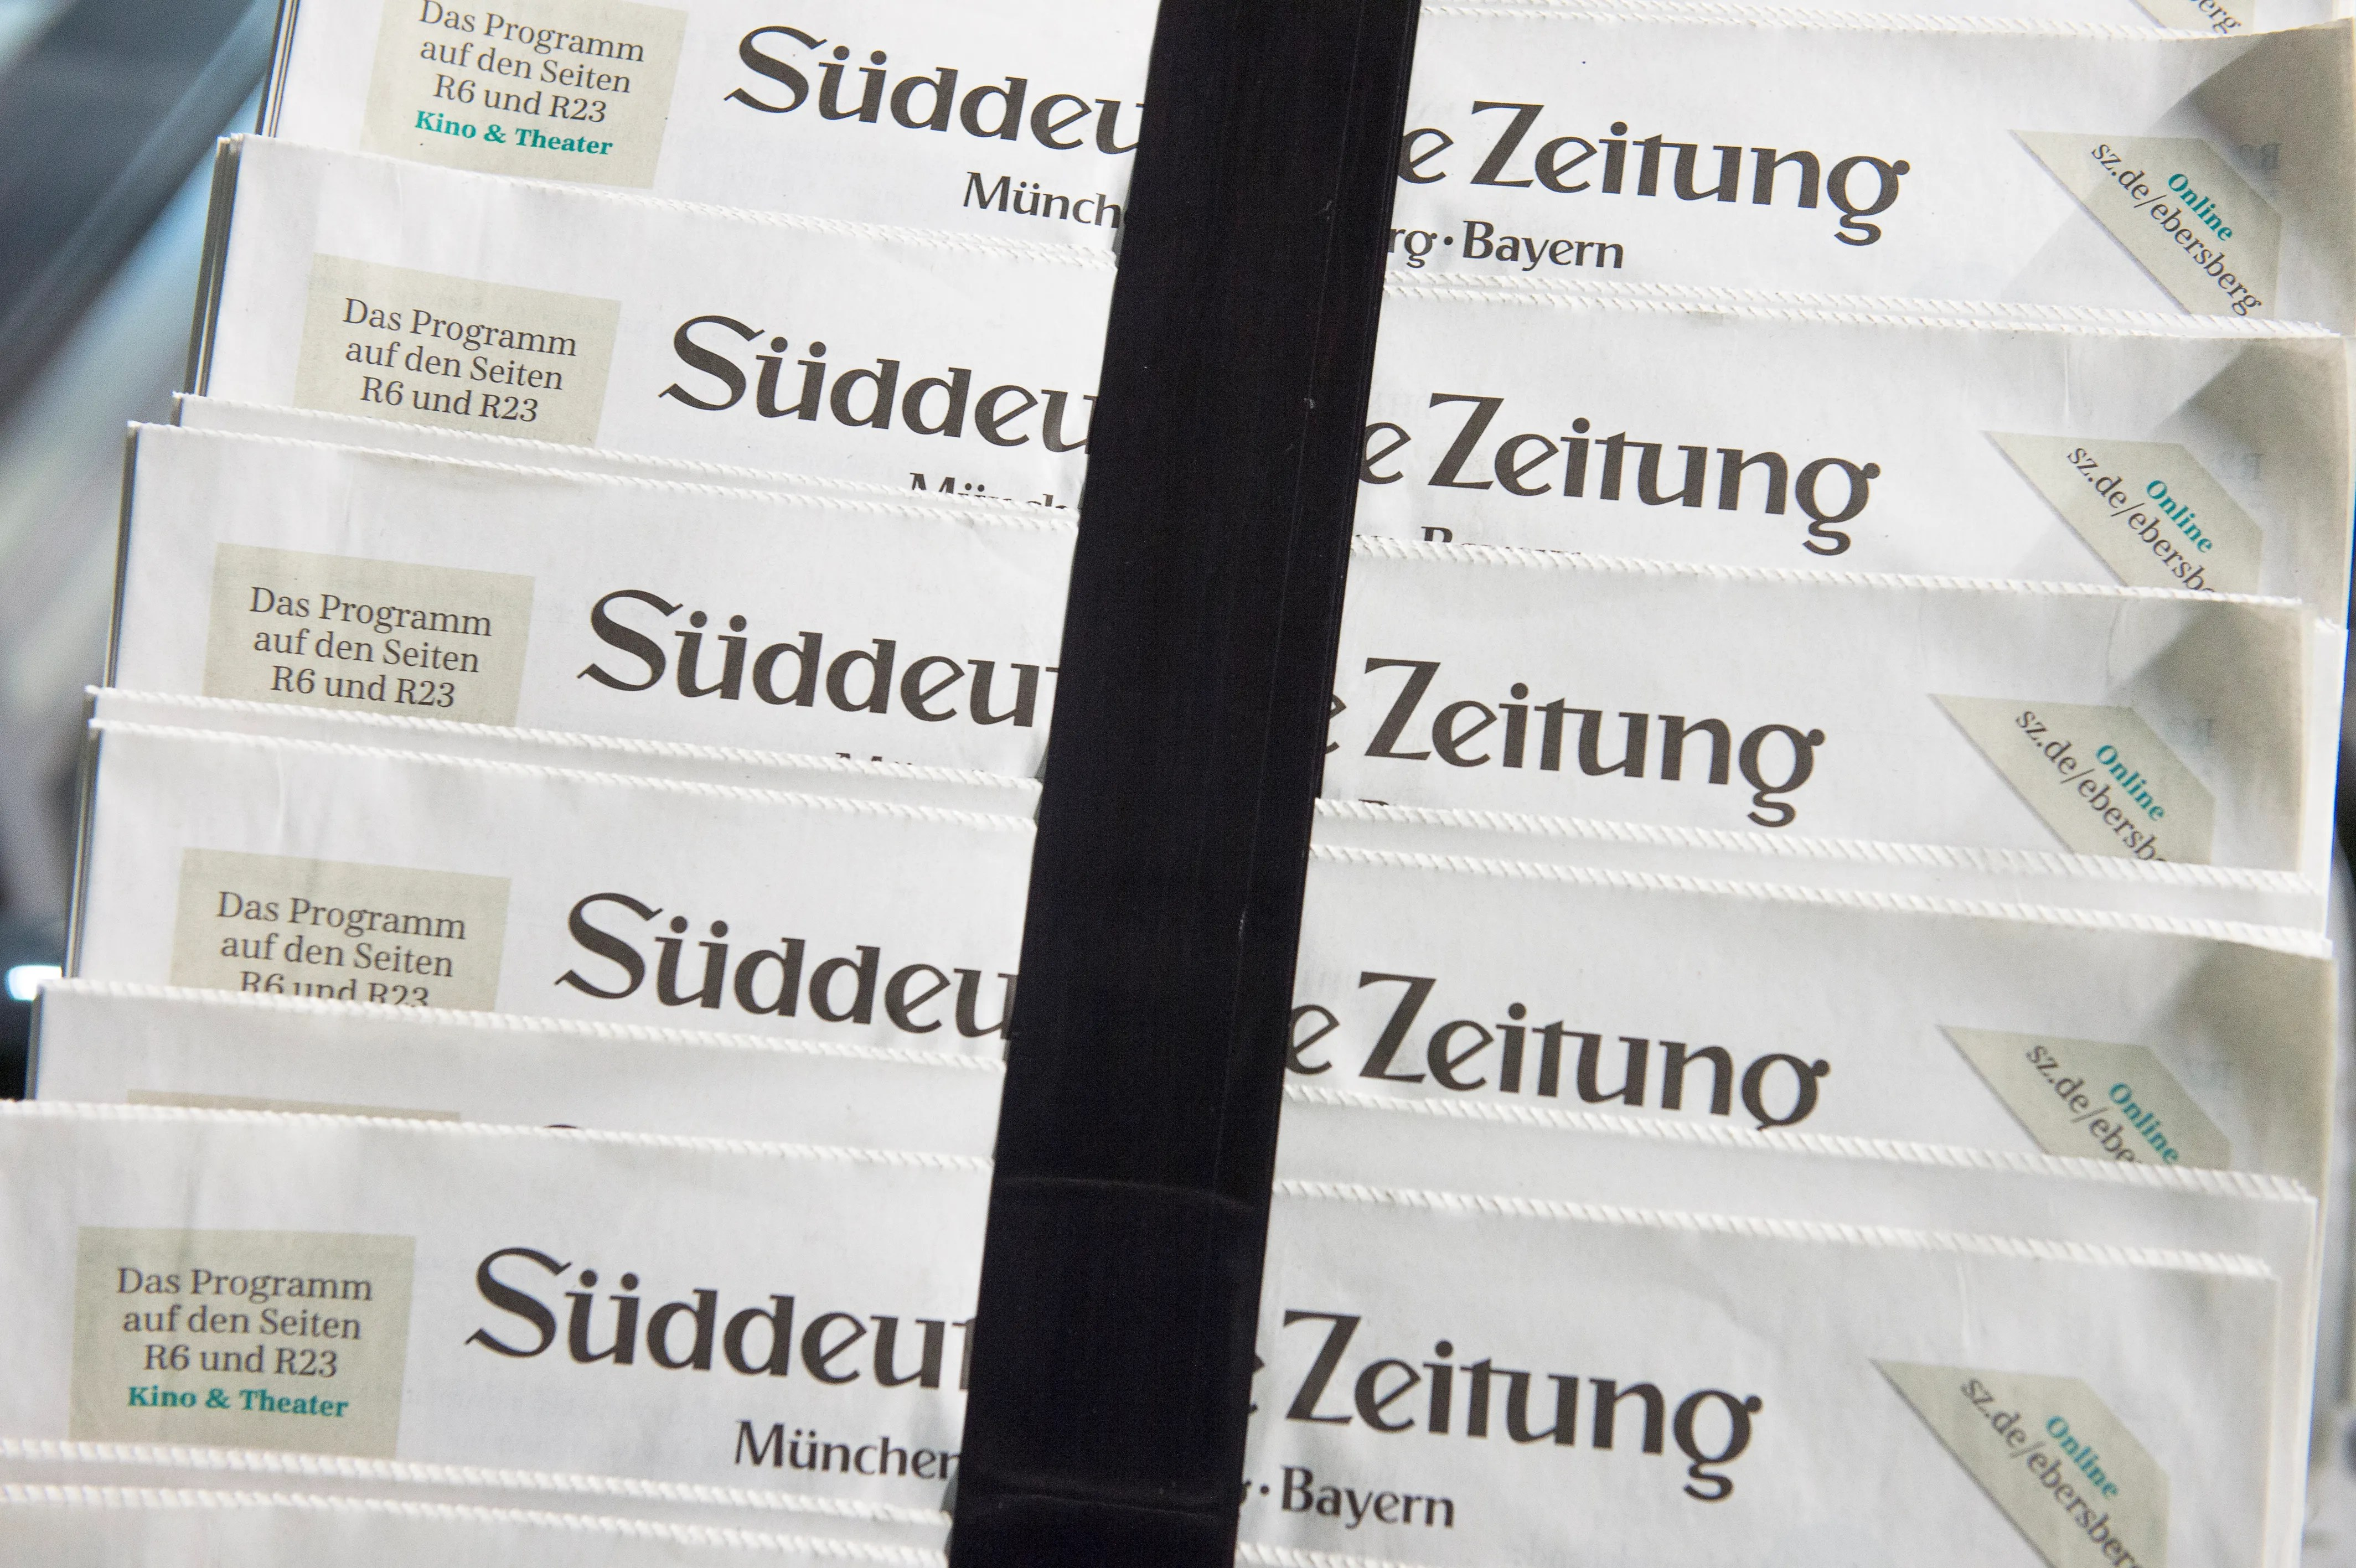 Süddeutsche Zeitung Shop How A German Newspaper Became The Go To Place For Leaks Like